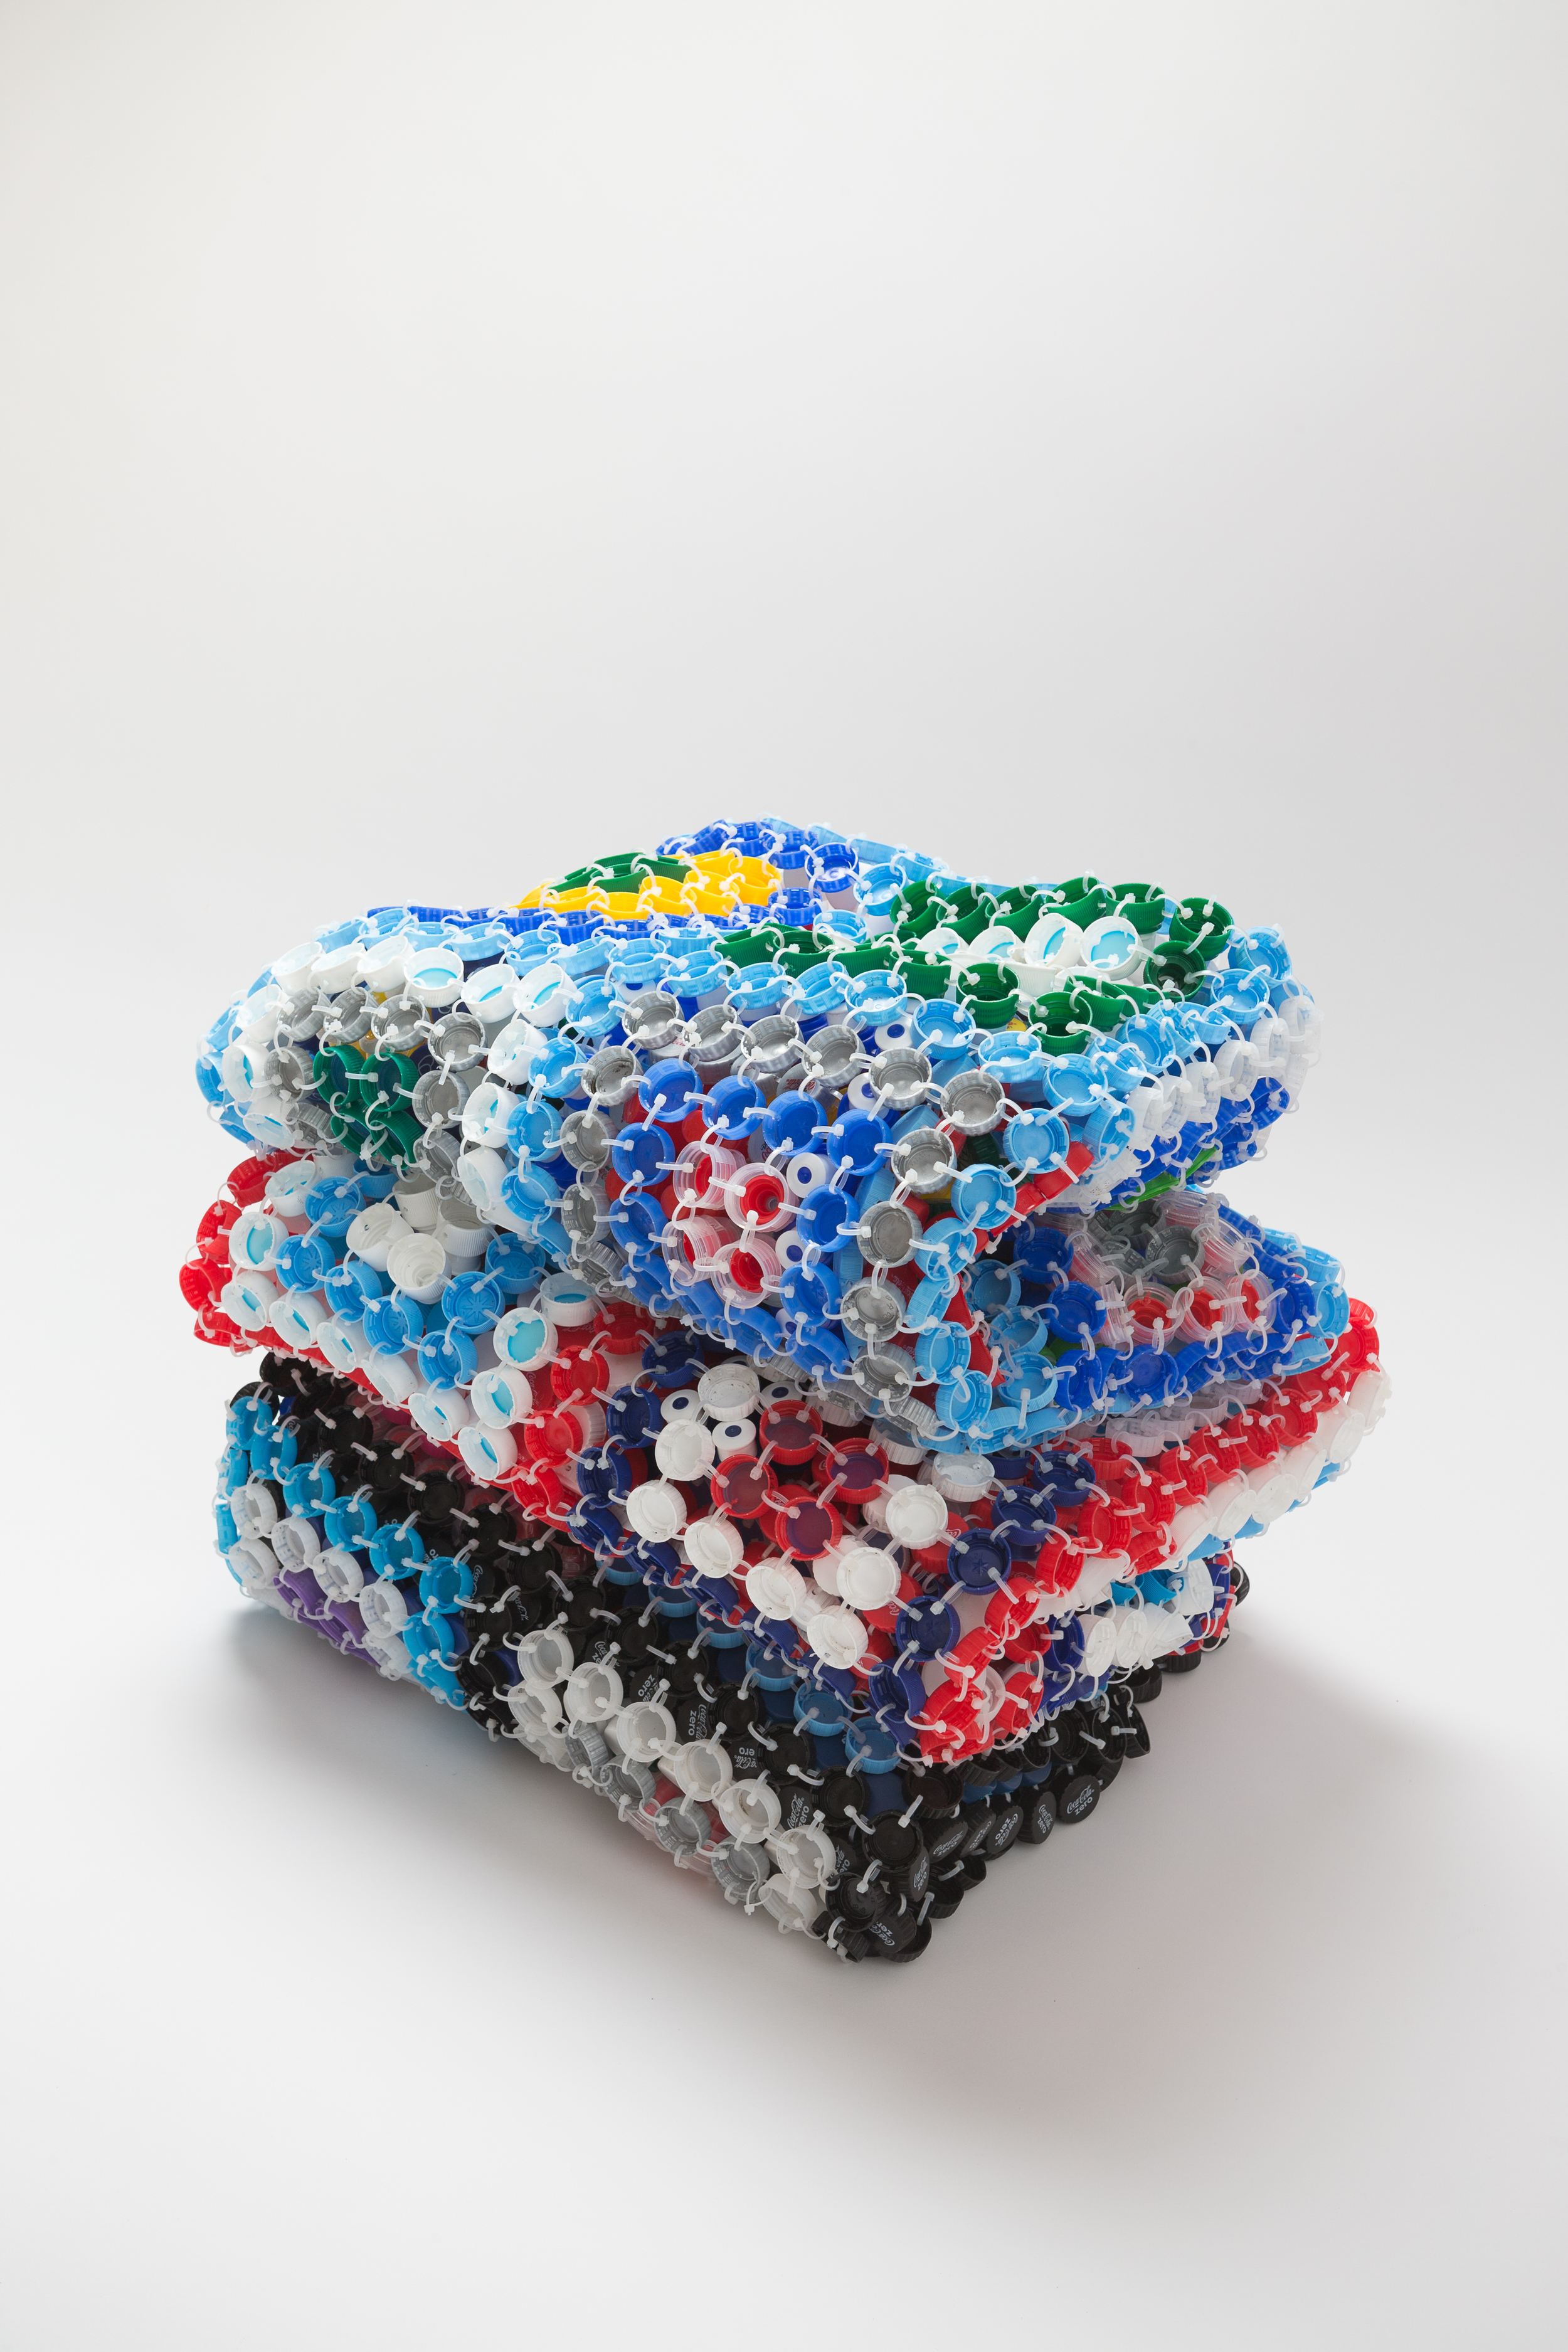 Shared Comfort   2014  Plastic bottle caps & cable ties  50 x 50 x 40cm  photographer James Field, courtesy of Adelaide Central School of Art